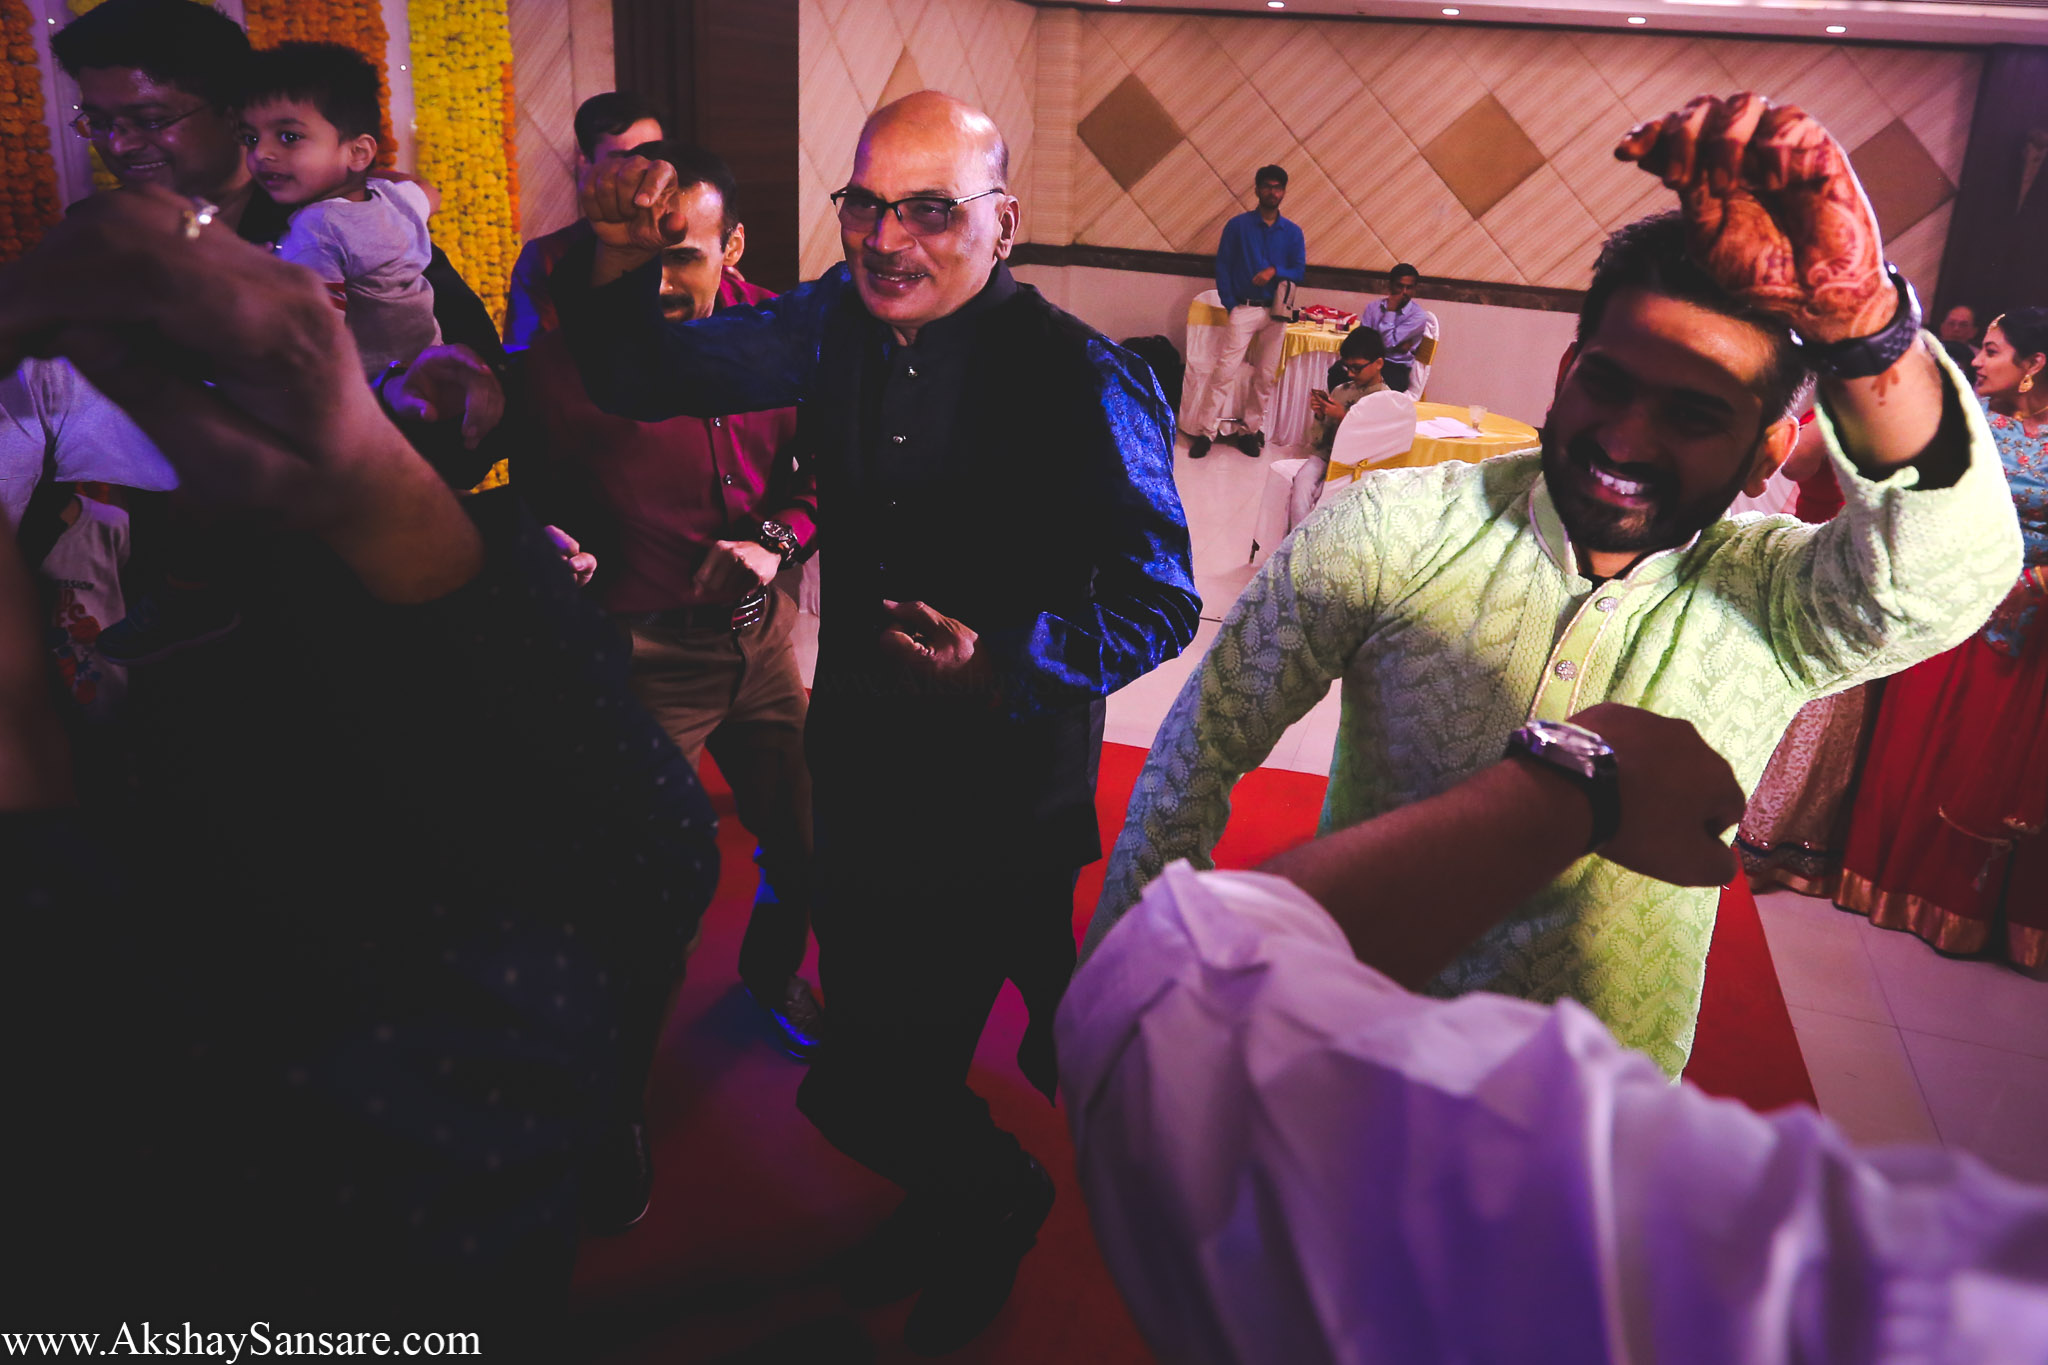 Ajay & Devika Akshay Sansare Photography Best Candid wedding photographer in mumbai india16.jpg